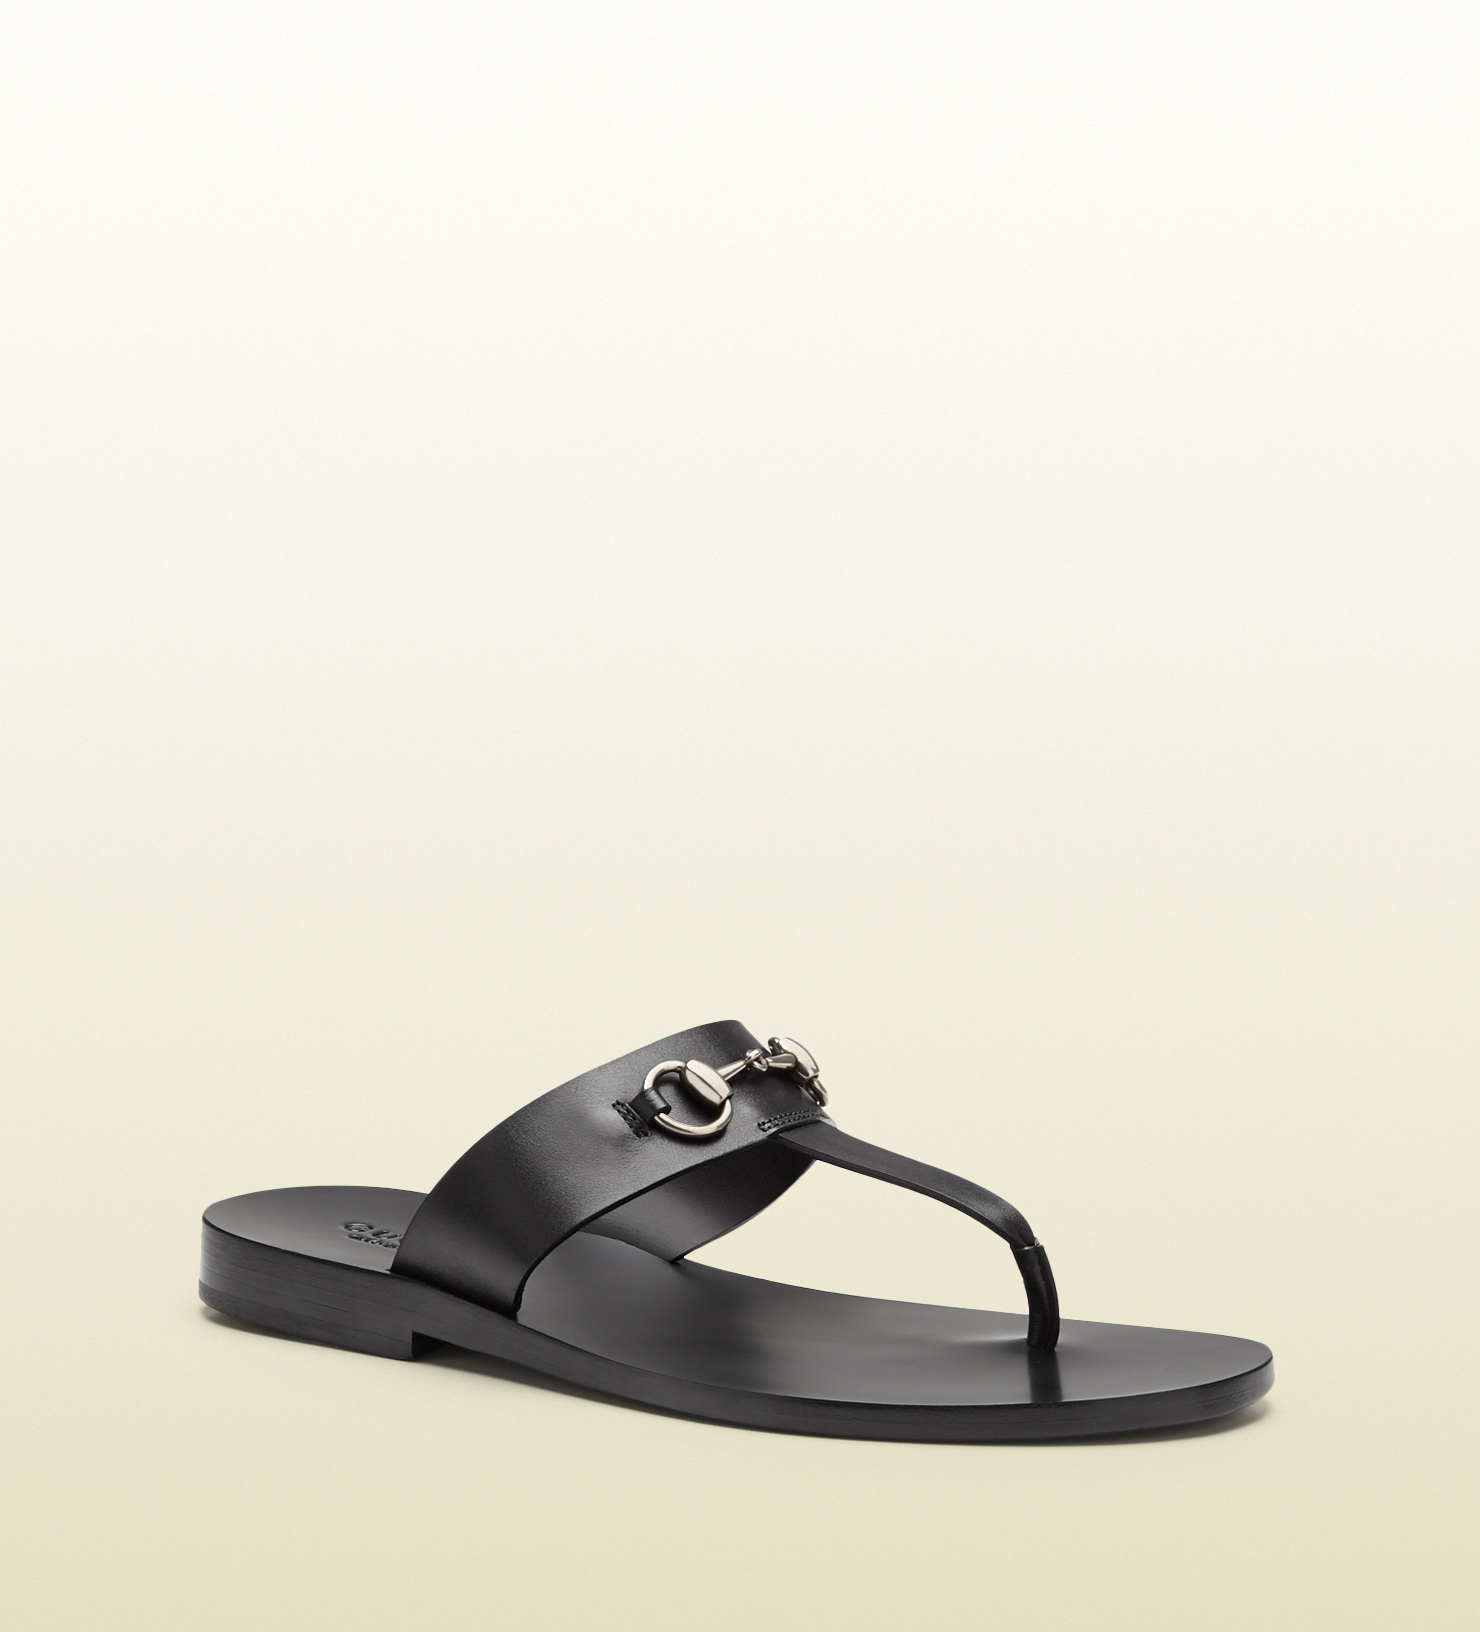 bf658328935 Lyst - Gucci Leather Horsebit Thong Sandal in Black